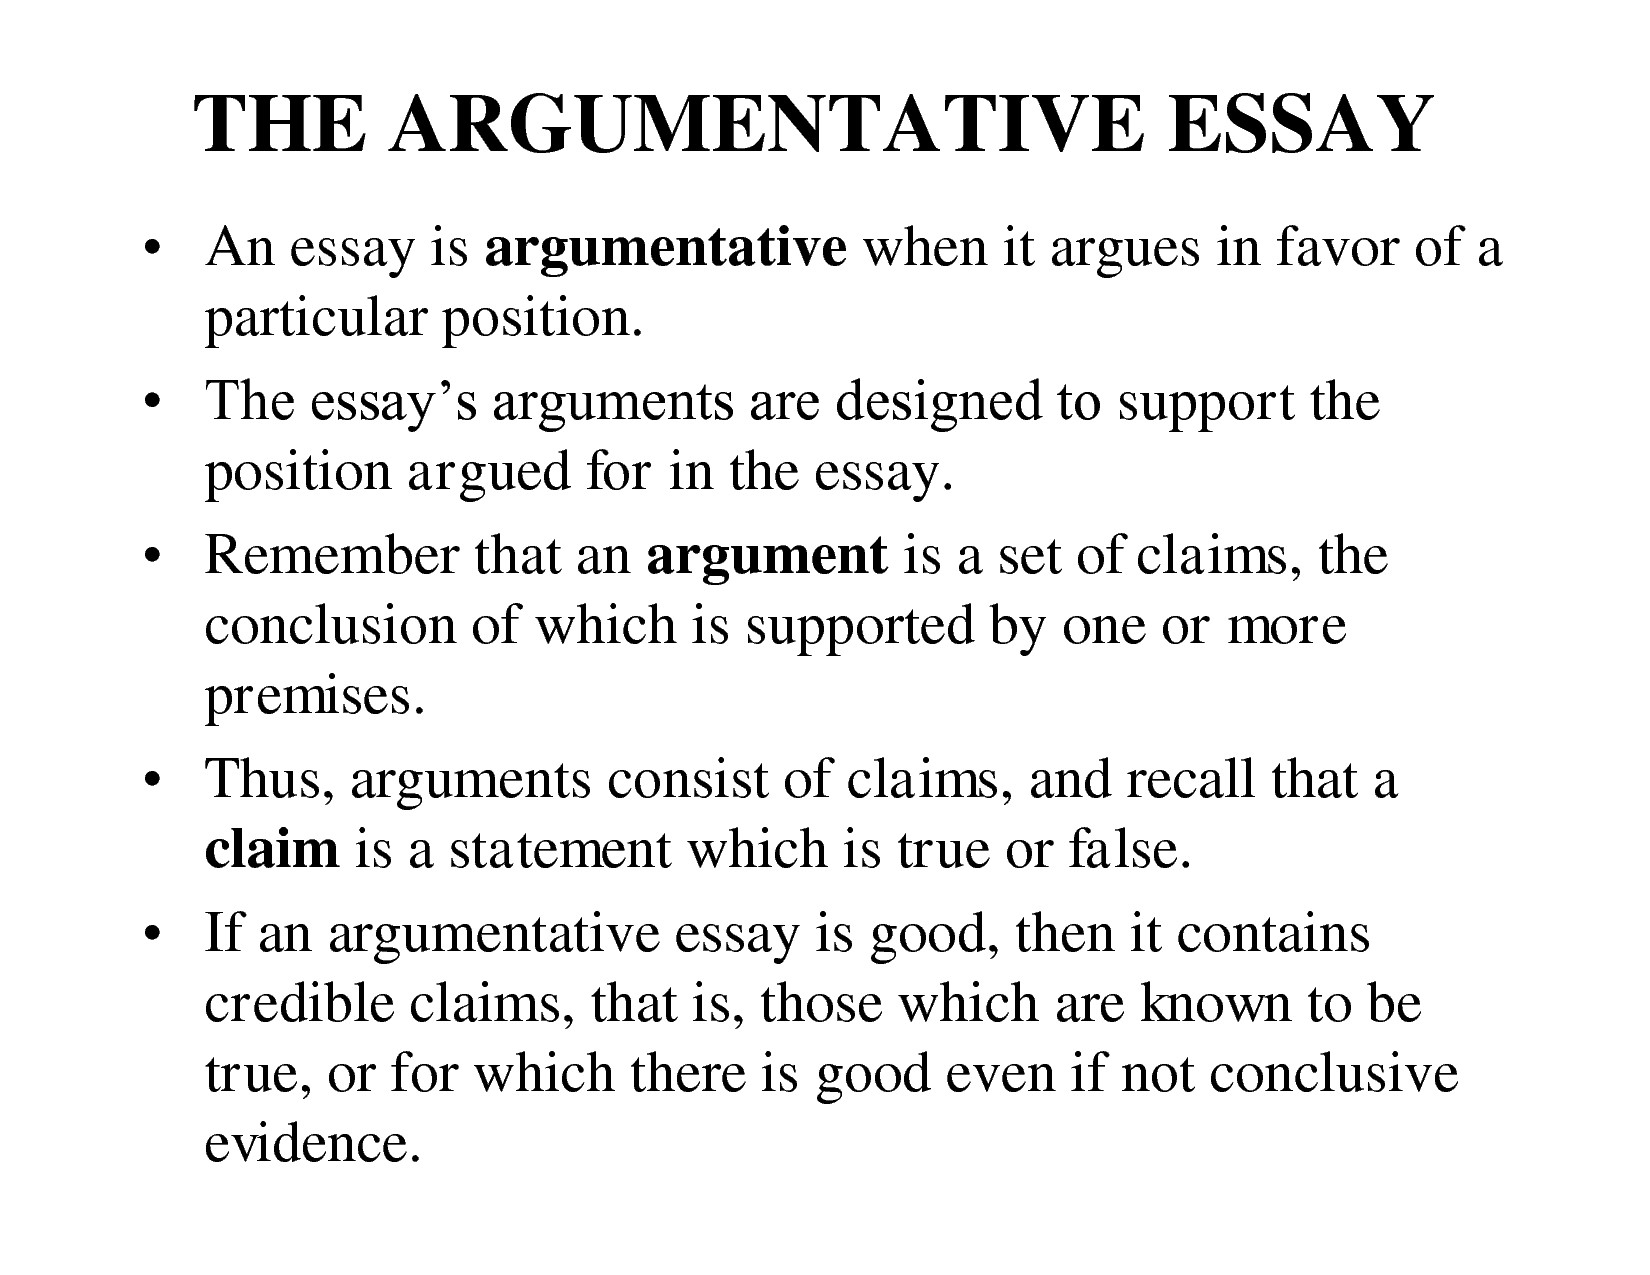 001 How To Write Good Conclusion For An Essay Exampleentative World Of Concluding Paragraph Persuasive Gse Bookbinder Co Rega Examples Impressive A Analytical Full